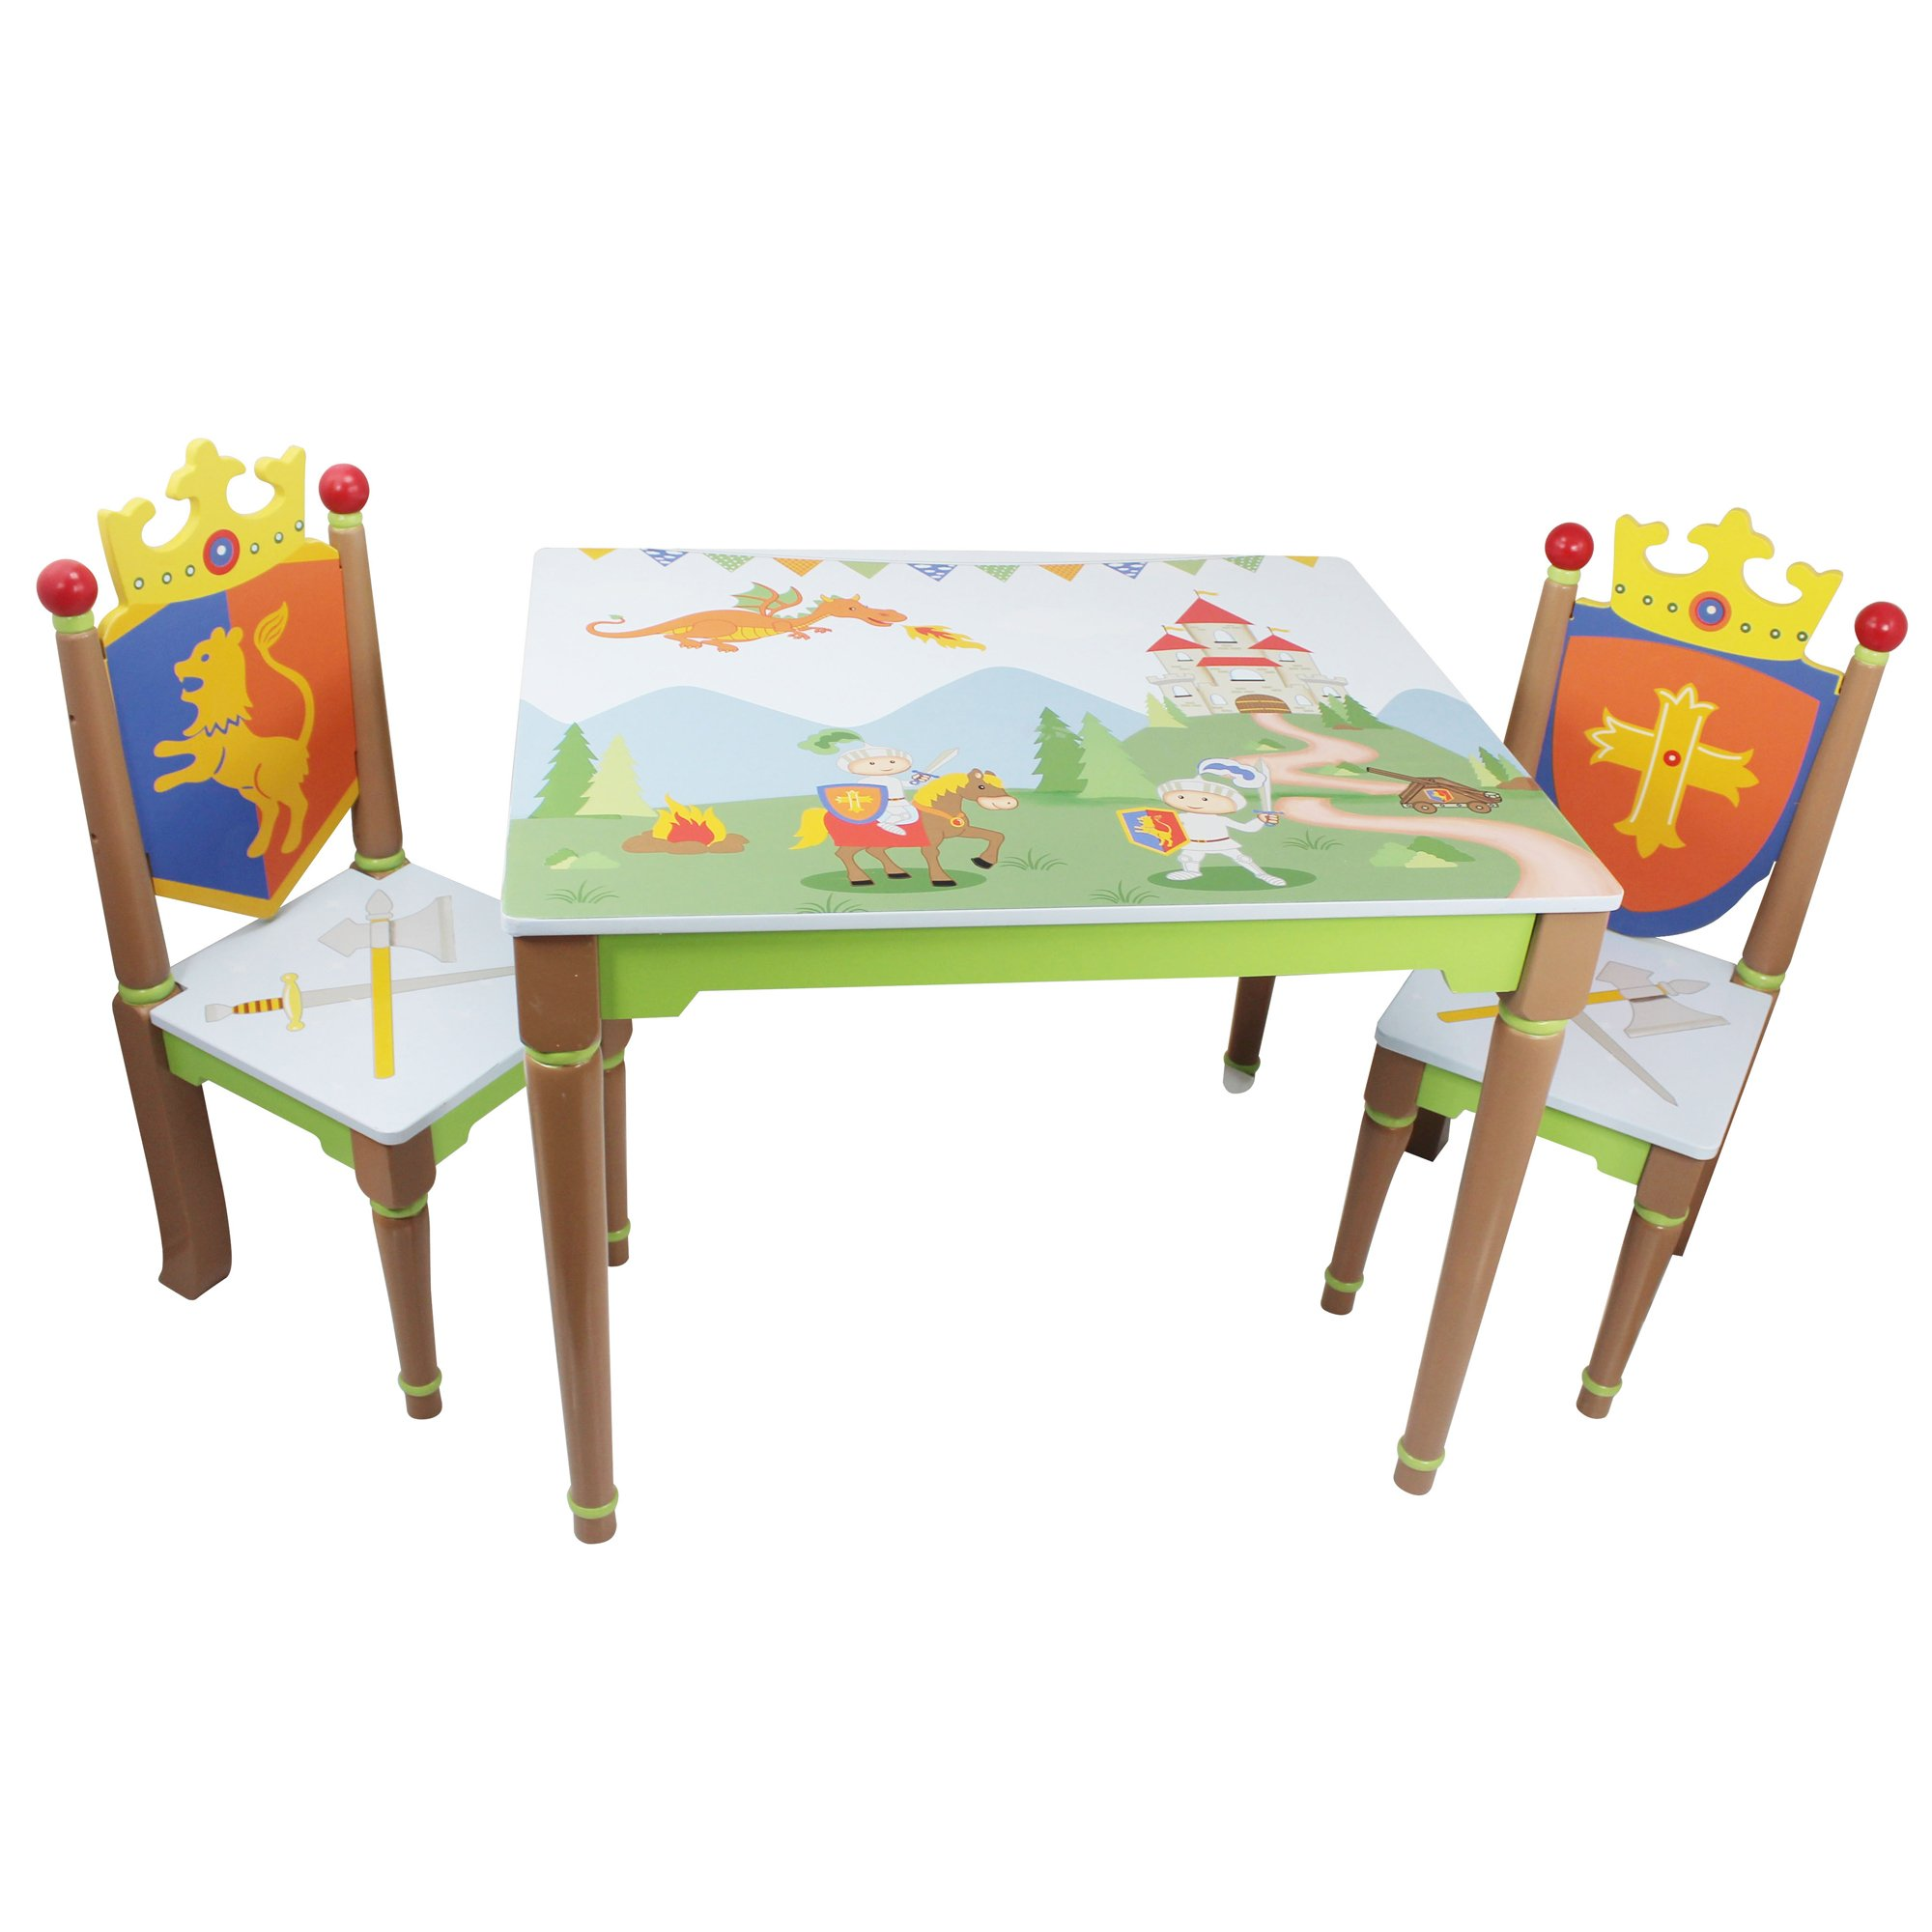 Fantasy Fields - Knights & Dragon Thematic Hand Crafted Kids Wooden Table and 2 Chairs Set |Imagination Inspiring Hand Crafted & Hand Painted Details | Non-Toxic, Lead Free Water-based Paint